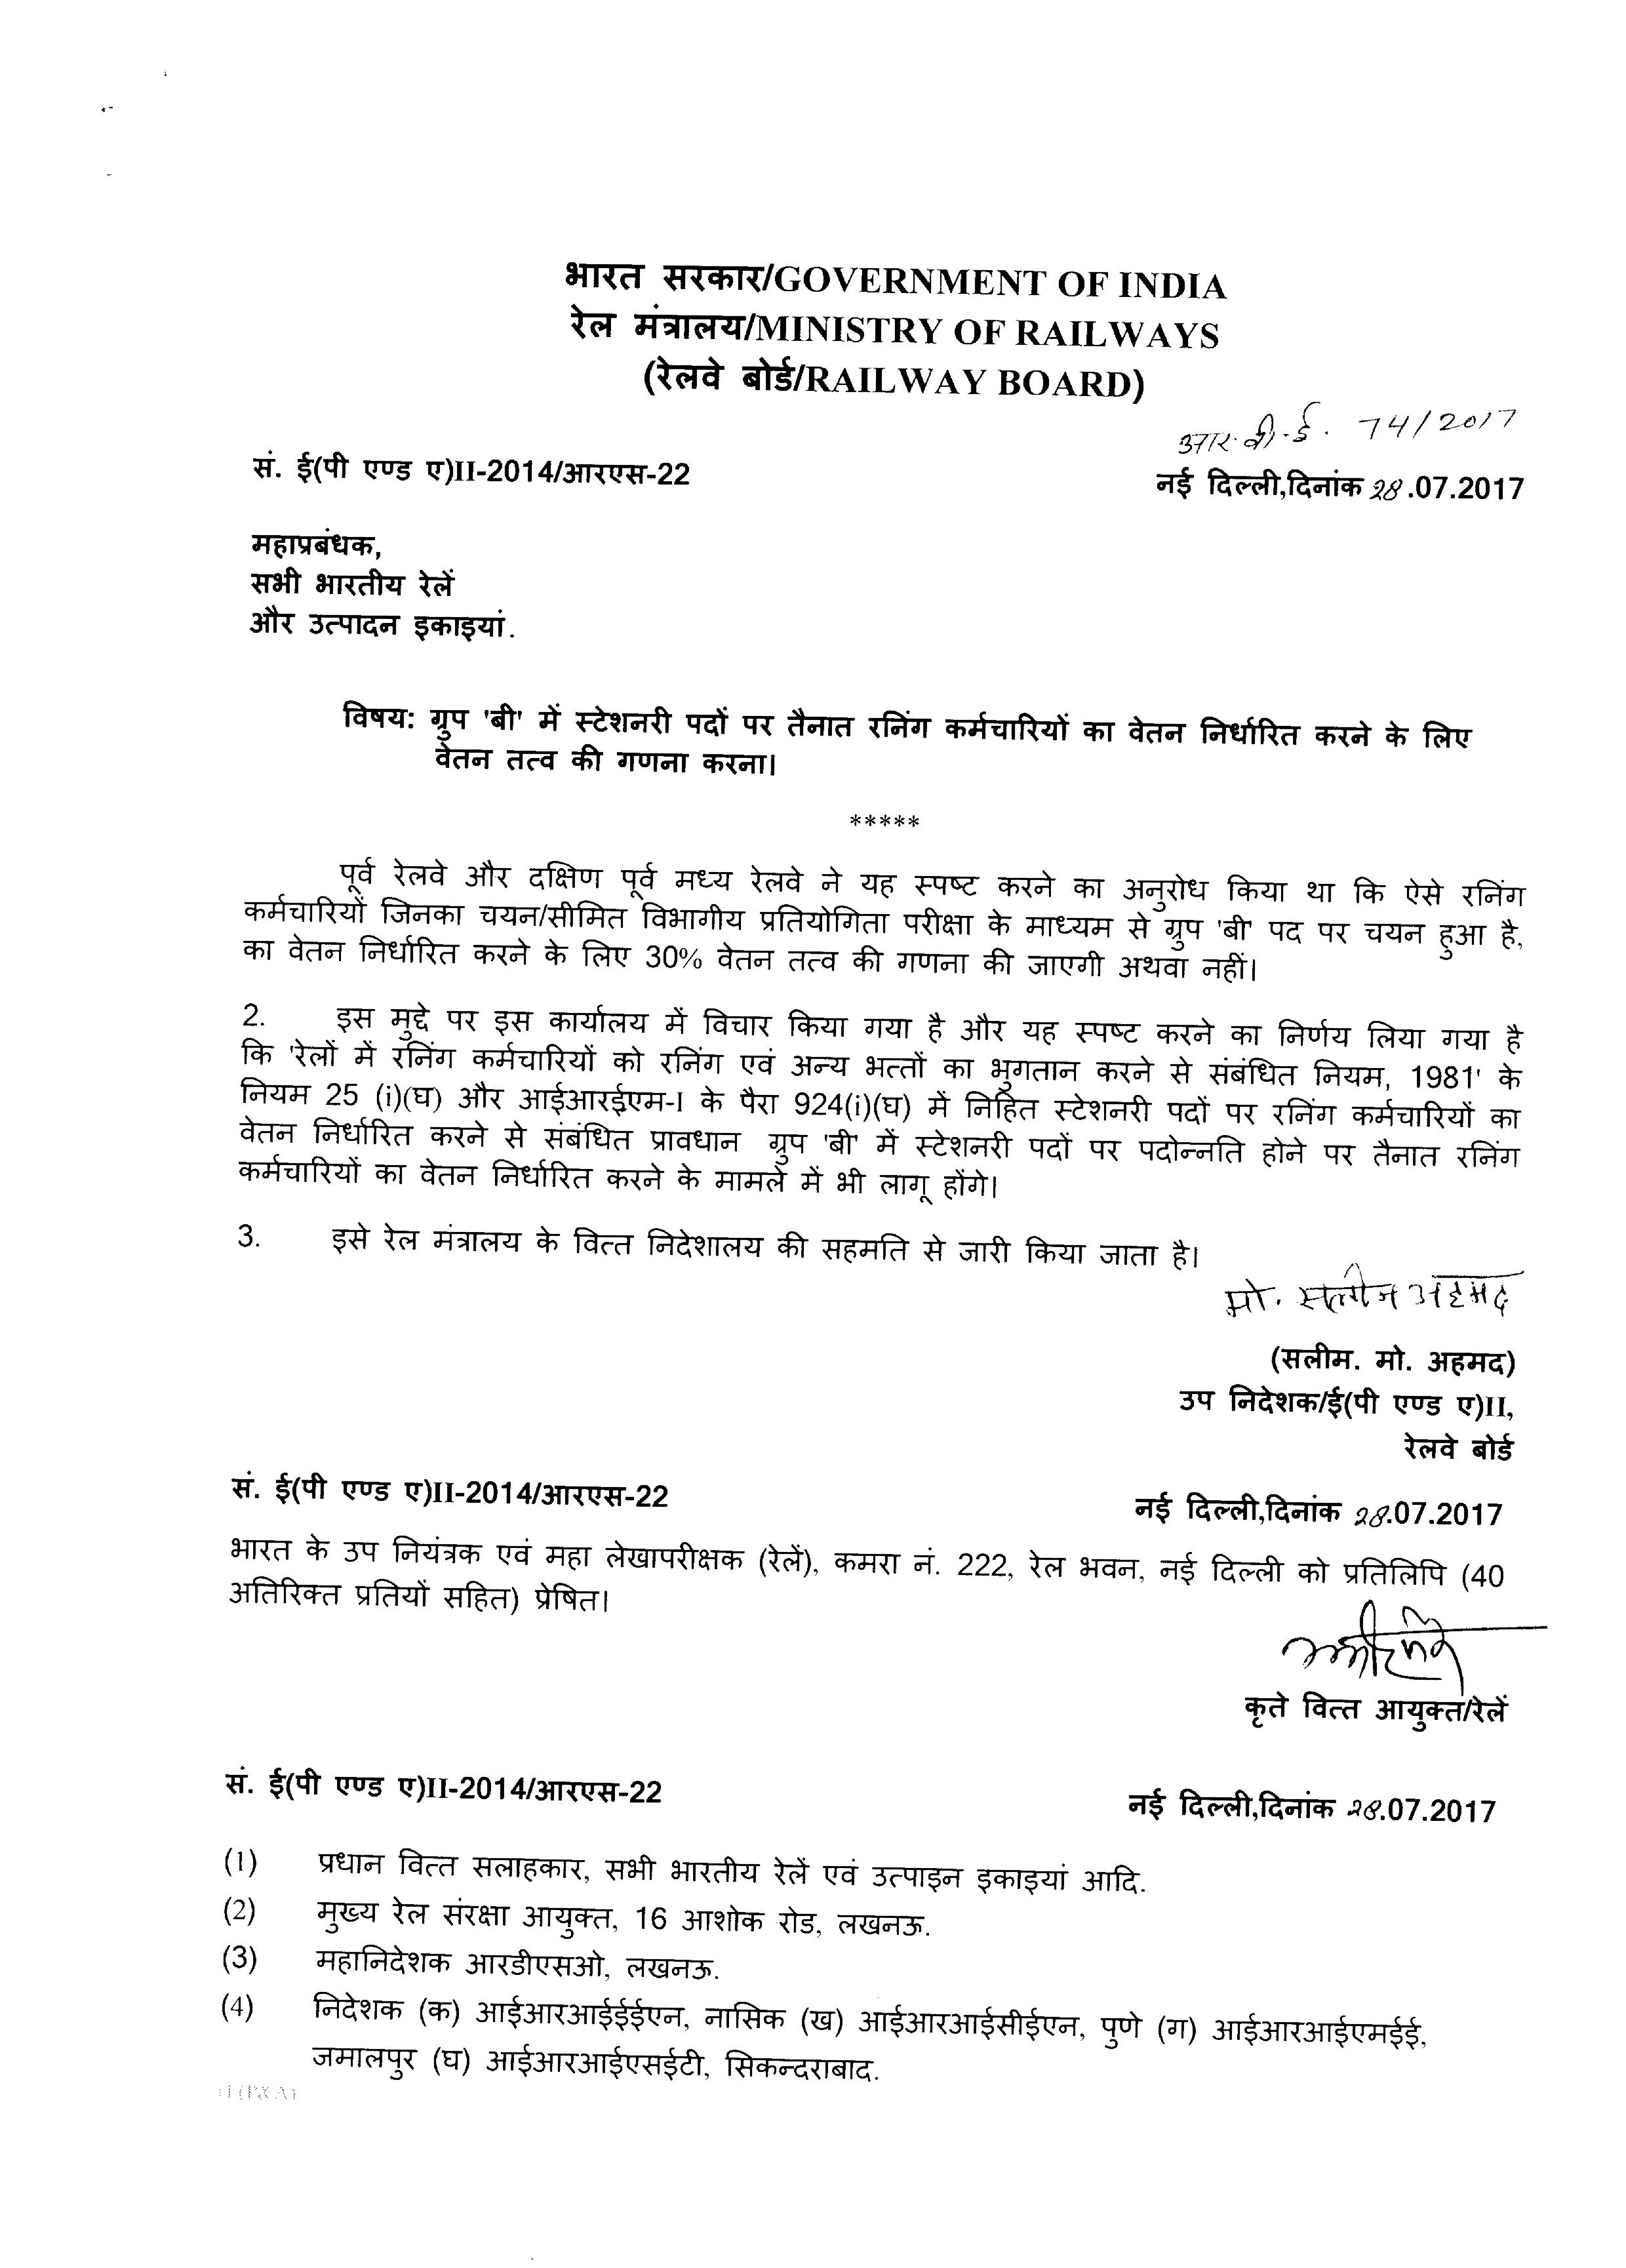 Fixation of pay of running staff in stationary posts in Group 'B' in Railways